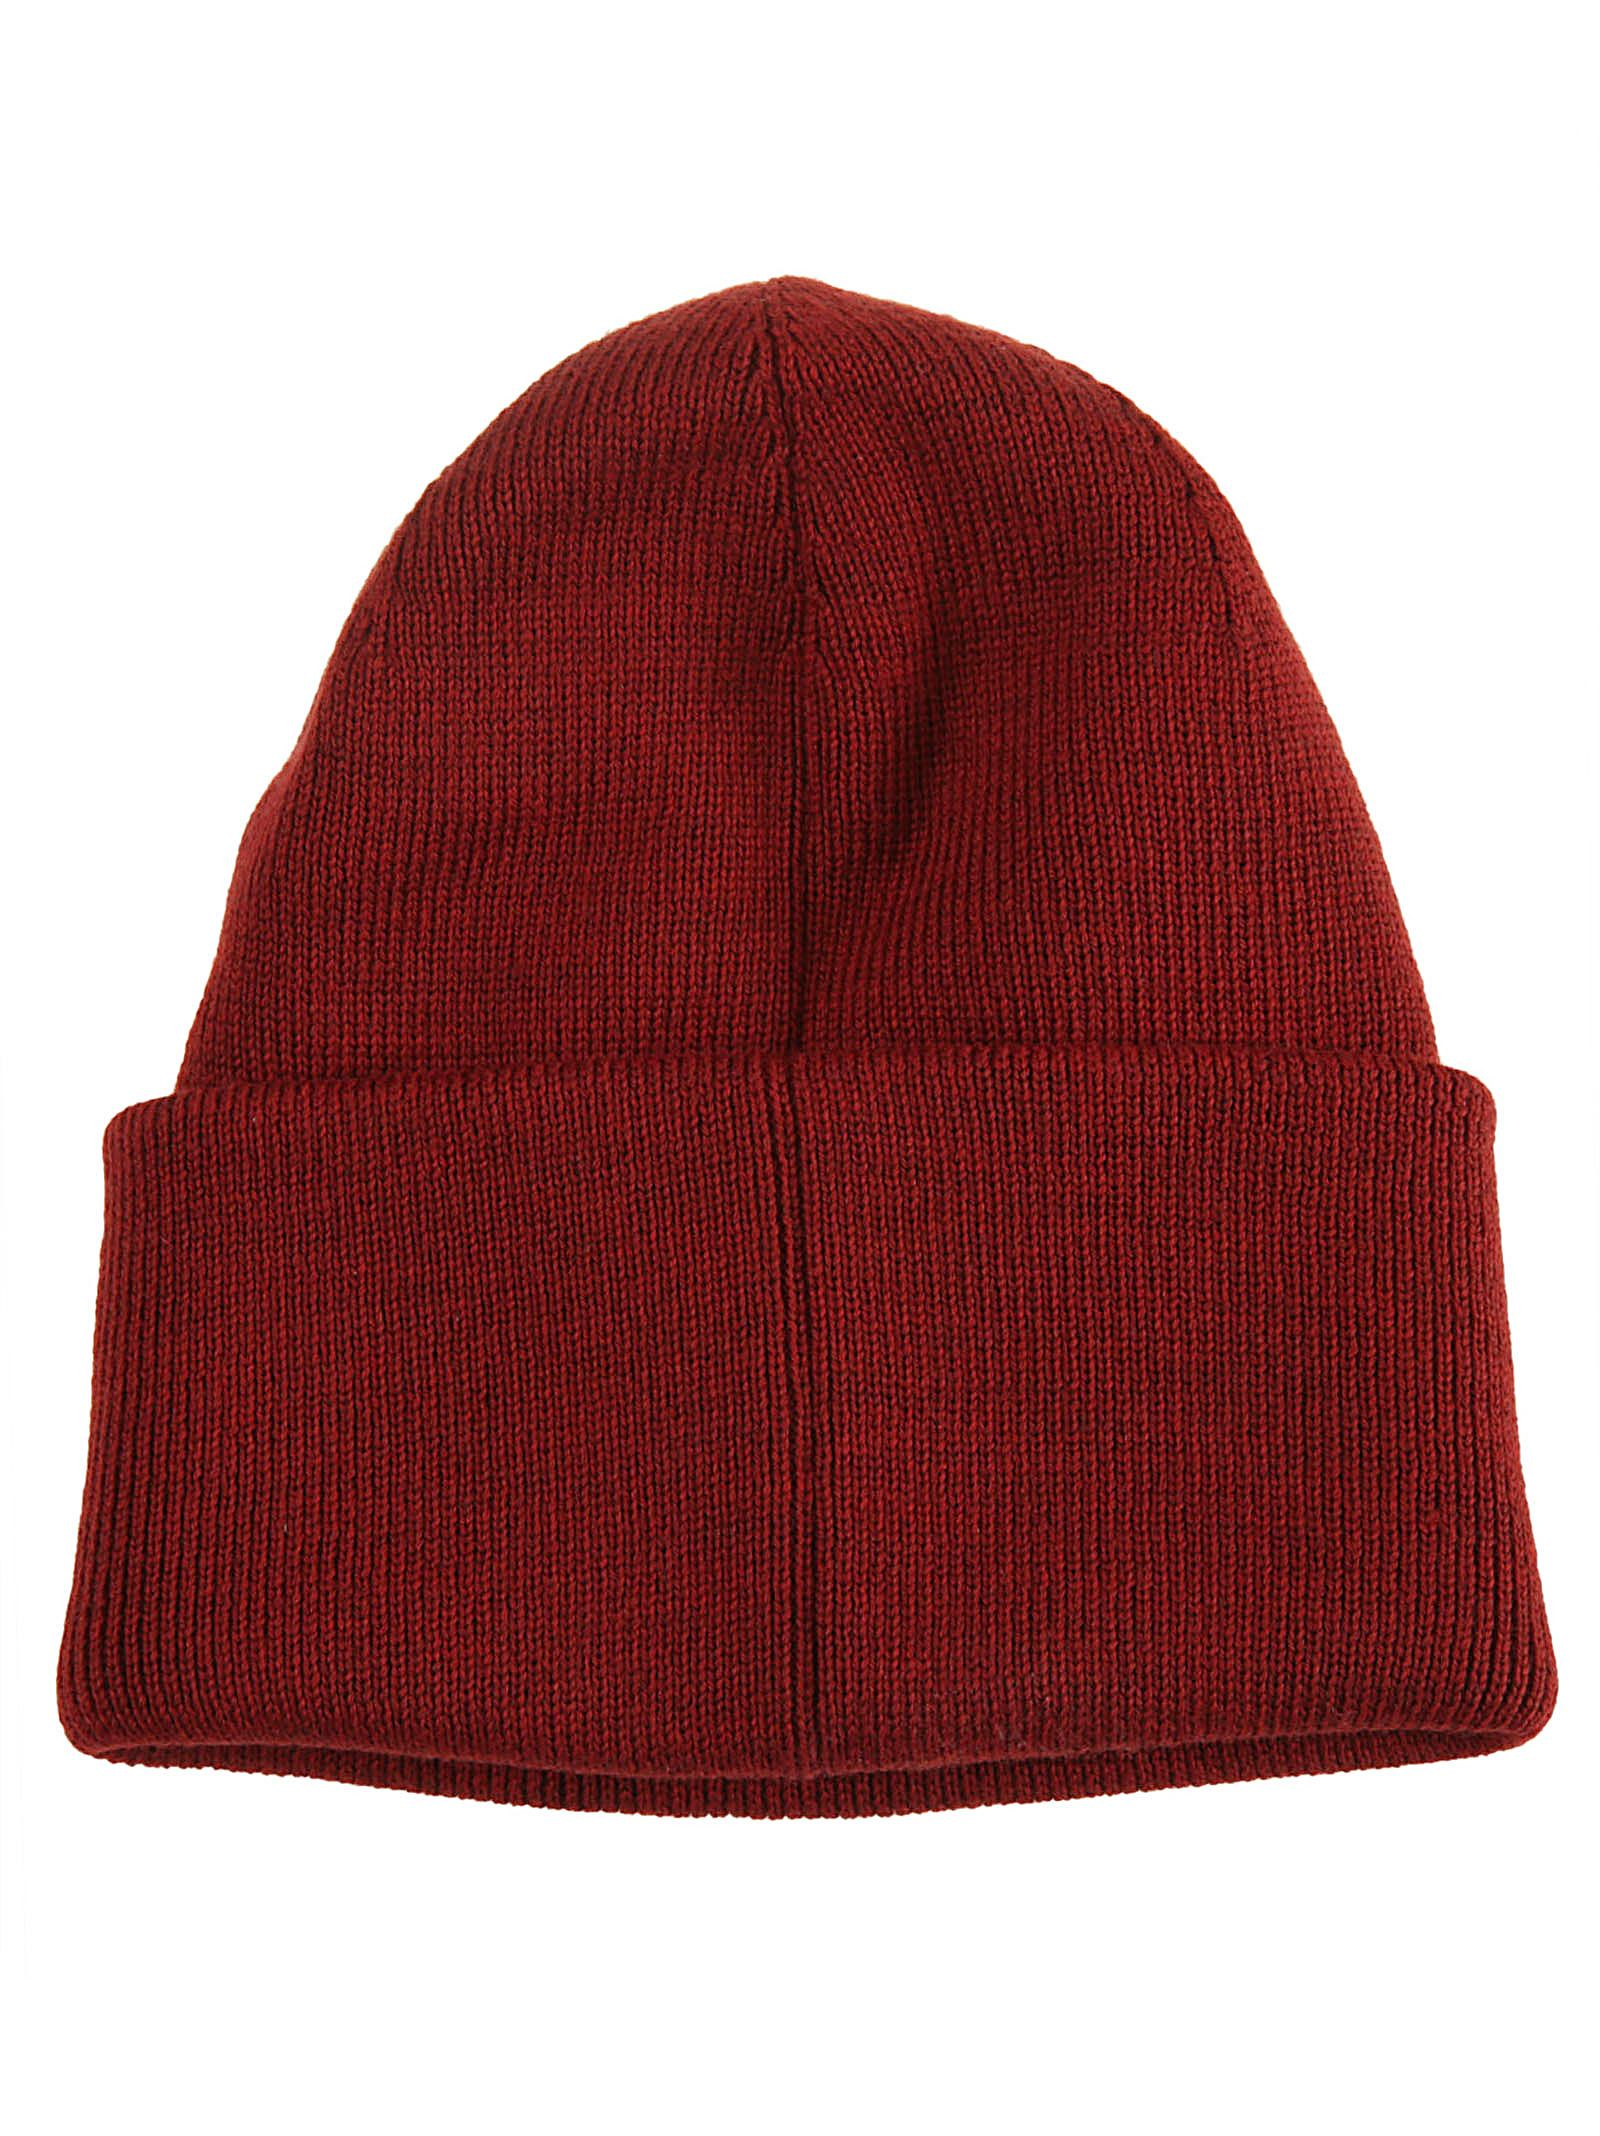 Canada Goose Fitted Beanie - Redwood Canada Goose Fitted Beanie - Redwood df6abd1f130